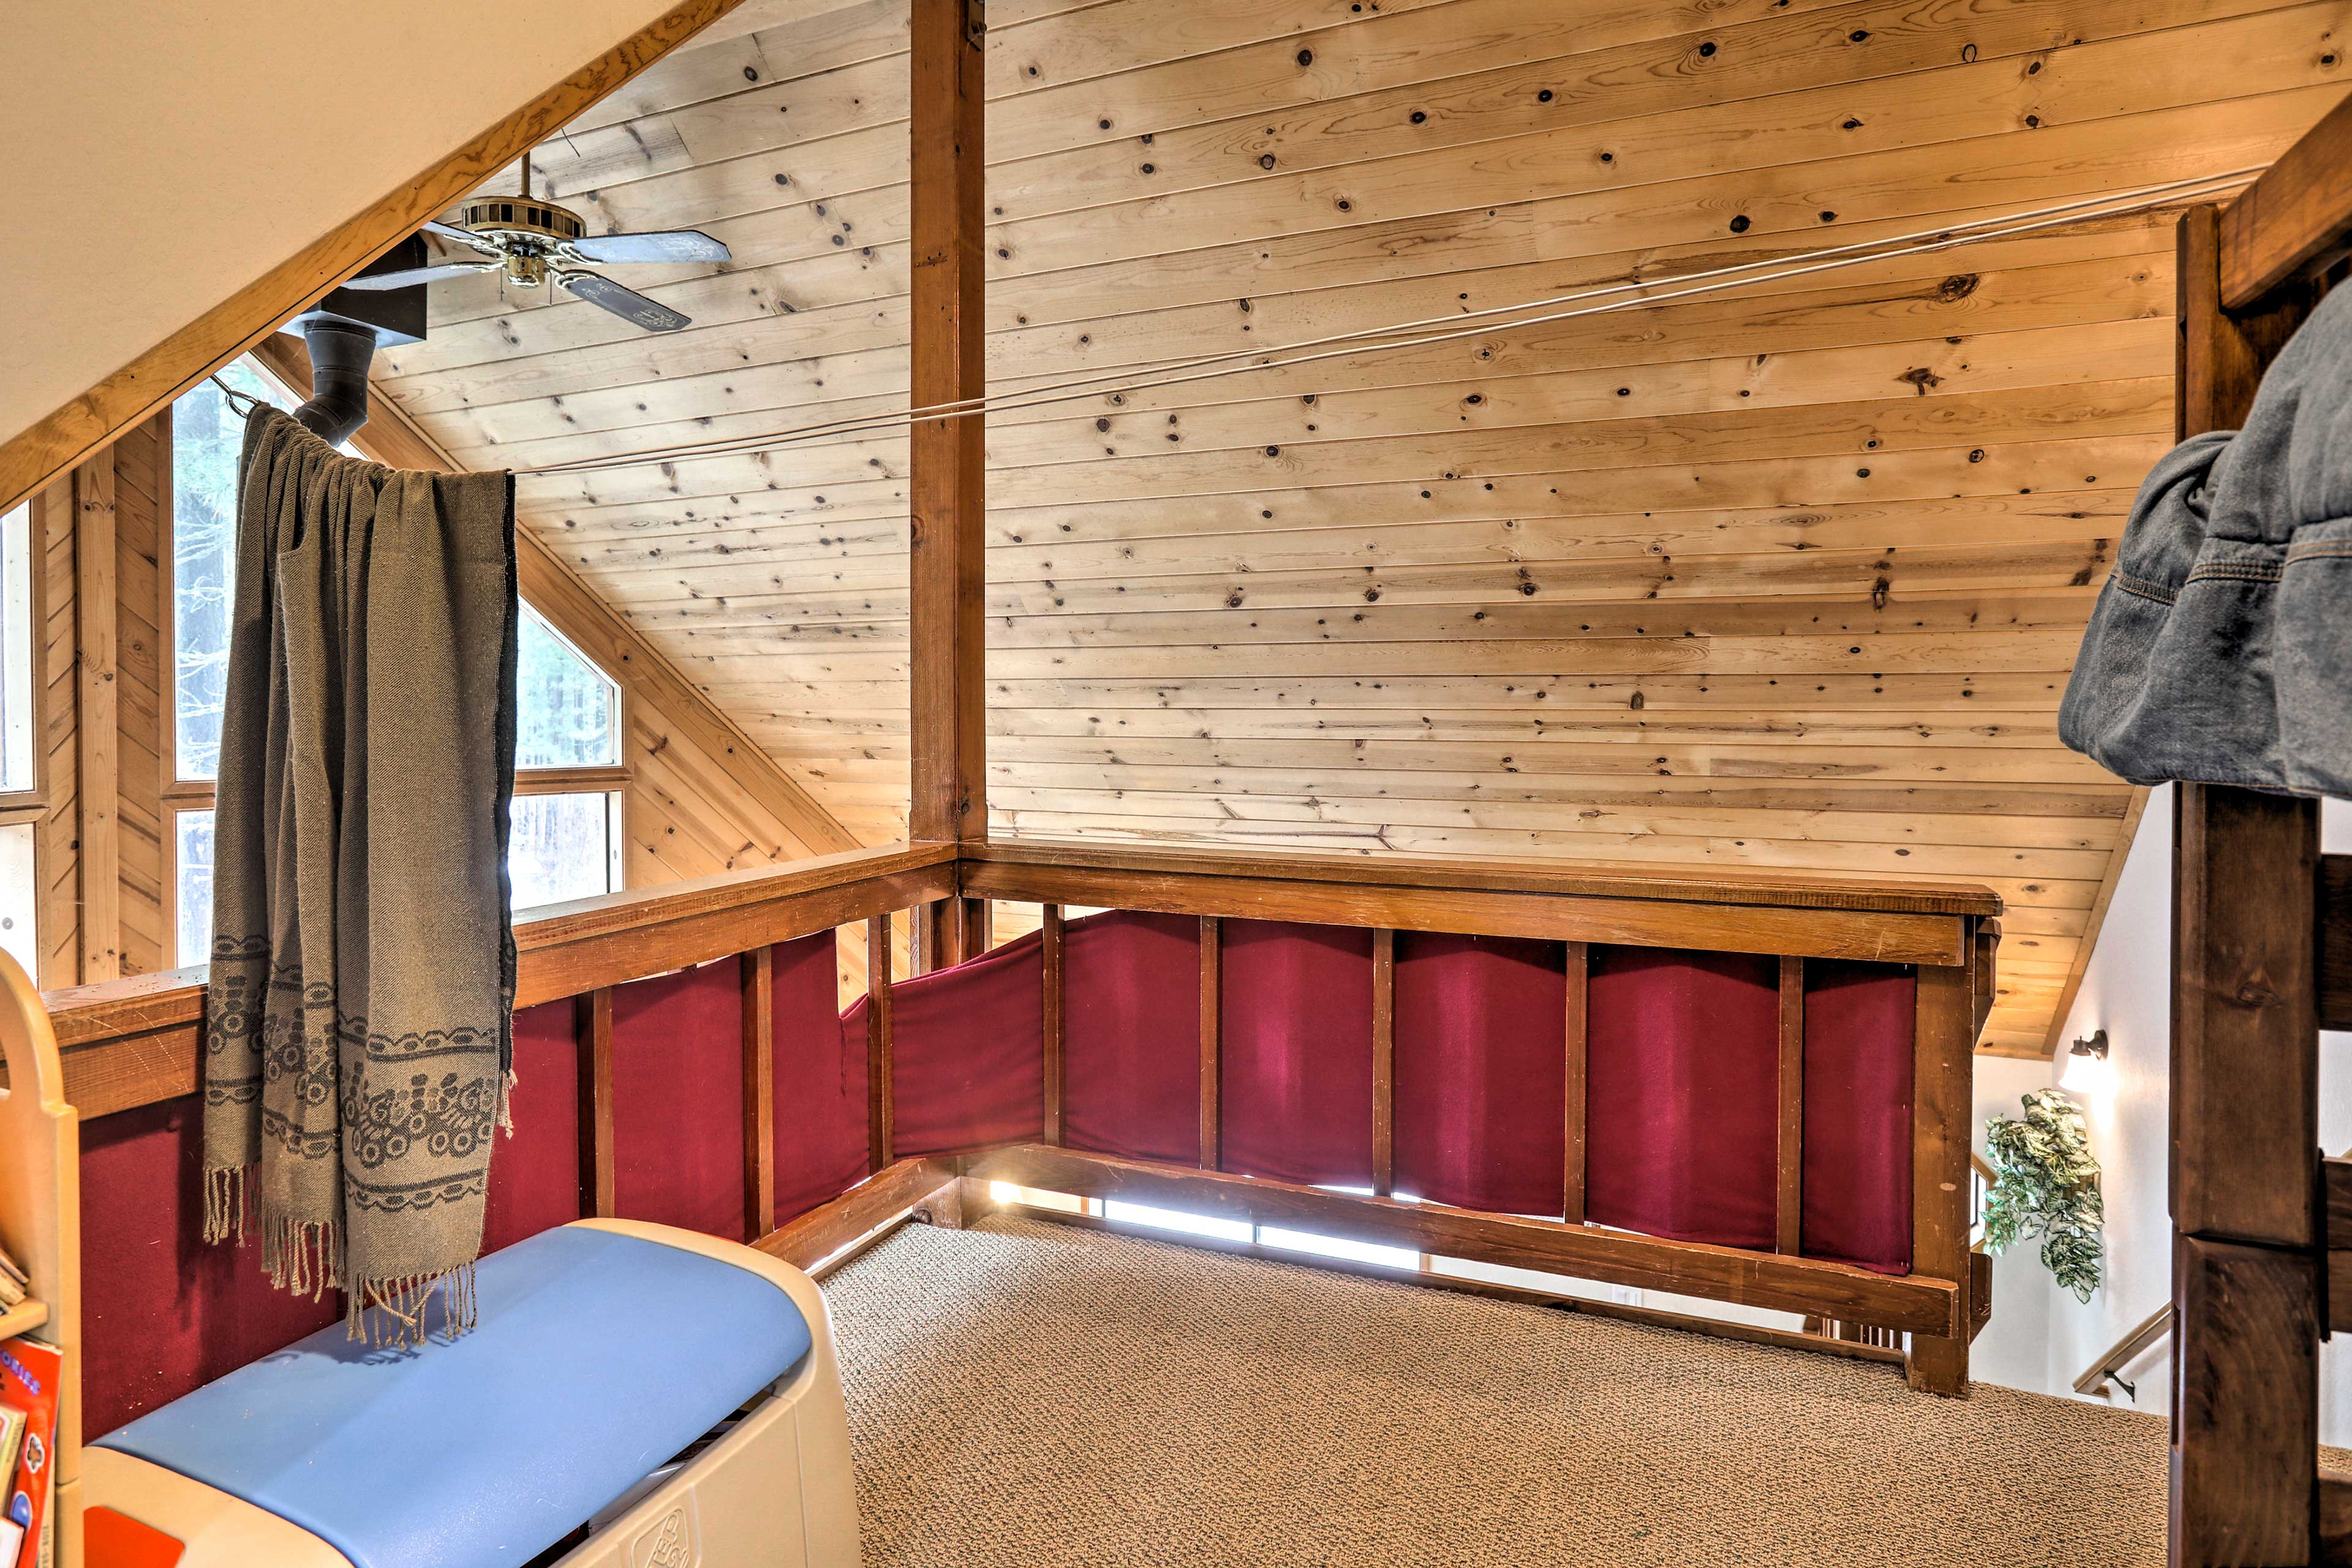 Sleek tongue & groove slanted ceilings open up the cabin.